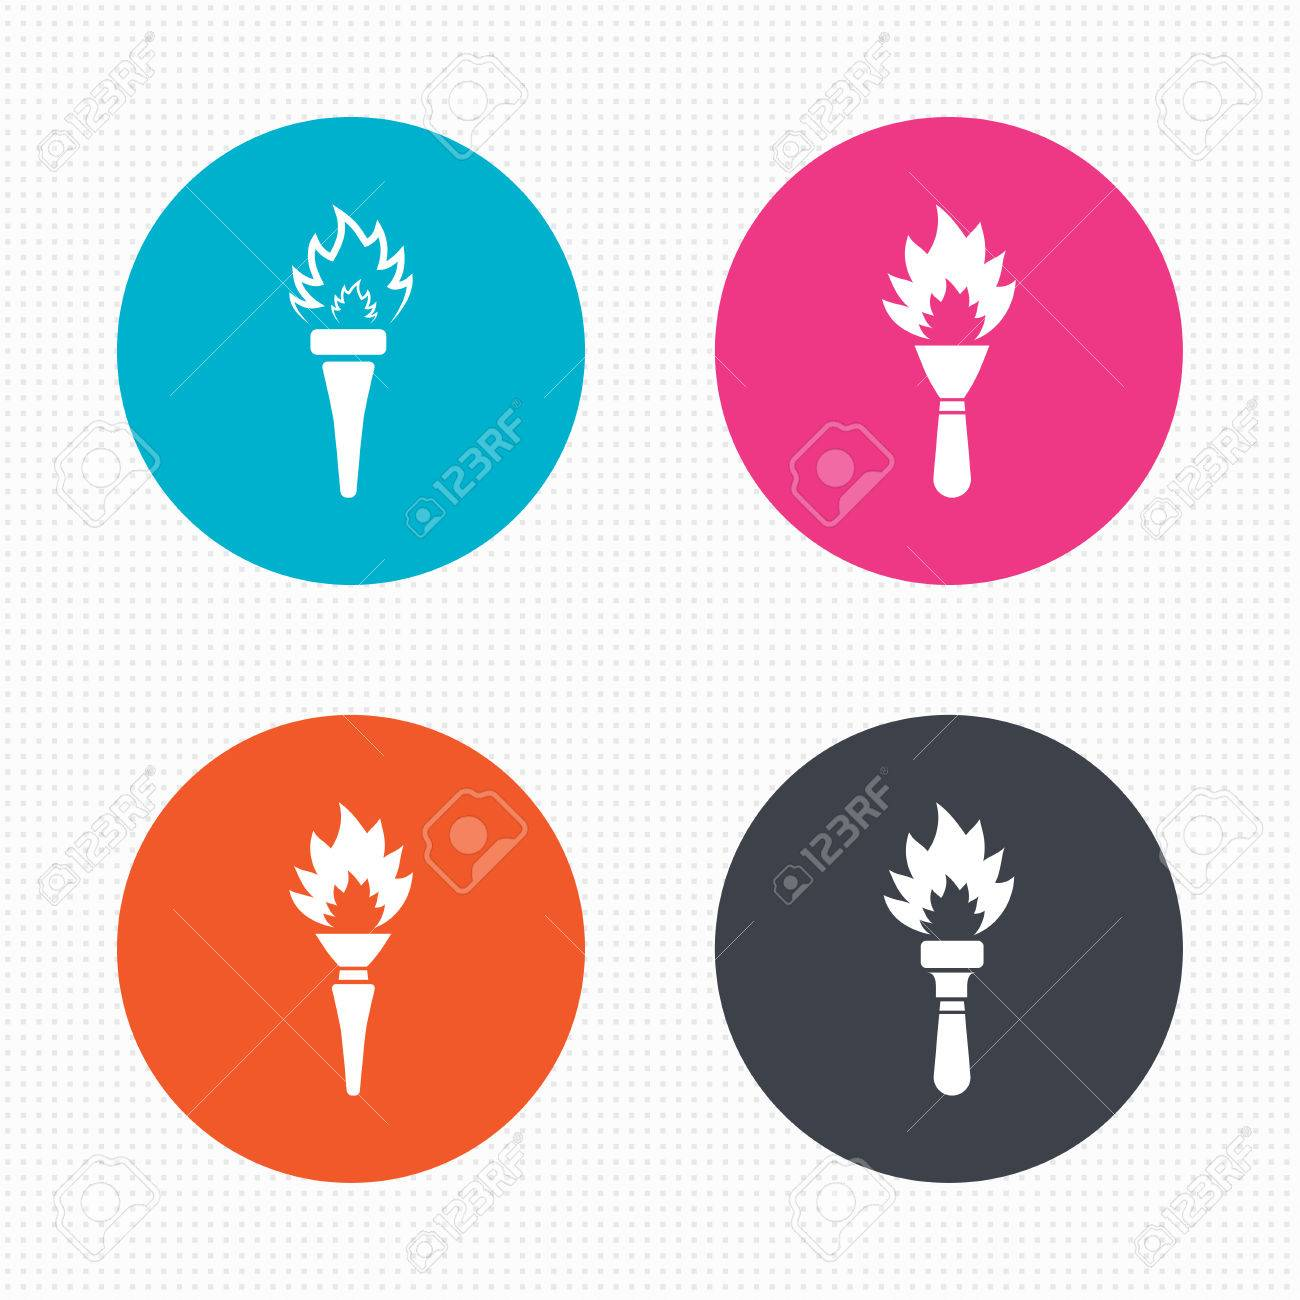 Torch flame icons. Fire flaming symbols. Hand tool which provides light  sc 1 st  123RF Stock Photos & Circle Buttons. Torch Flame Icons. Fire Flaming Symbols. Hand ... azcodes.com